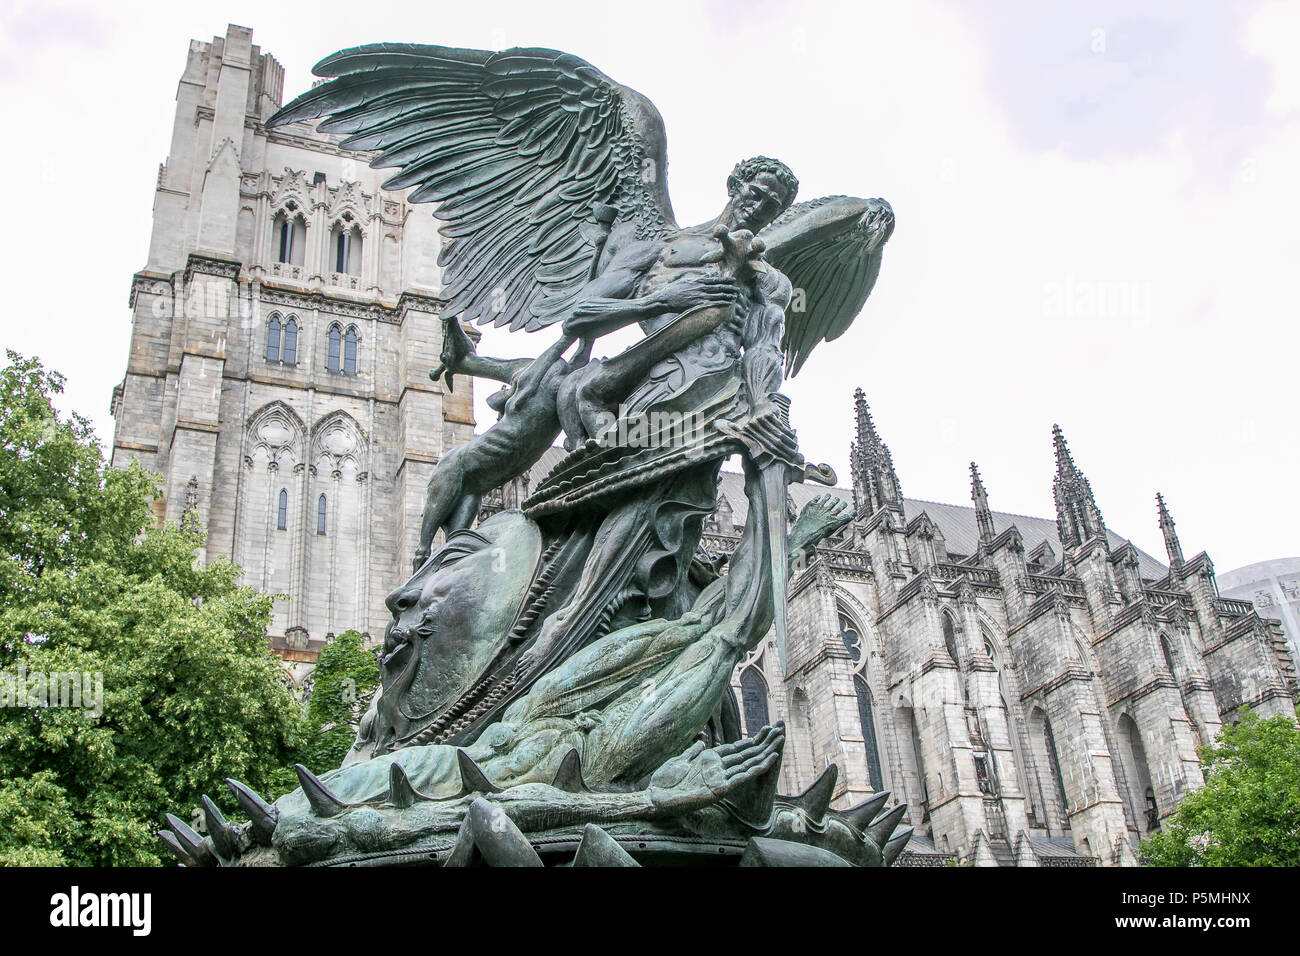 Peace Fountain by Greg Wyatt, by The Cathedral Church of St. John the Divine in NYC. Stock Photo